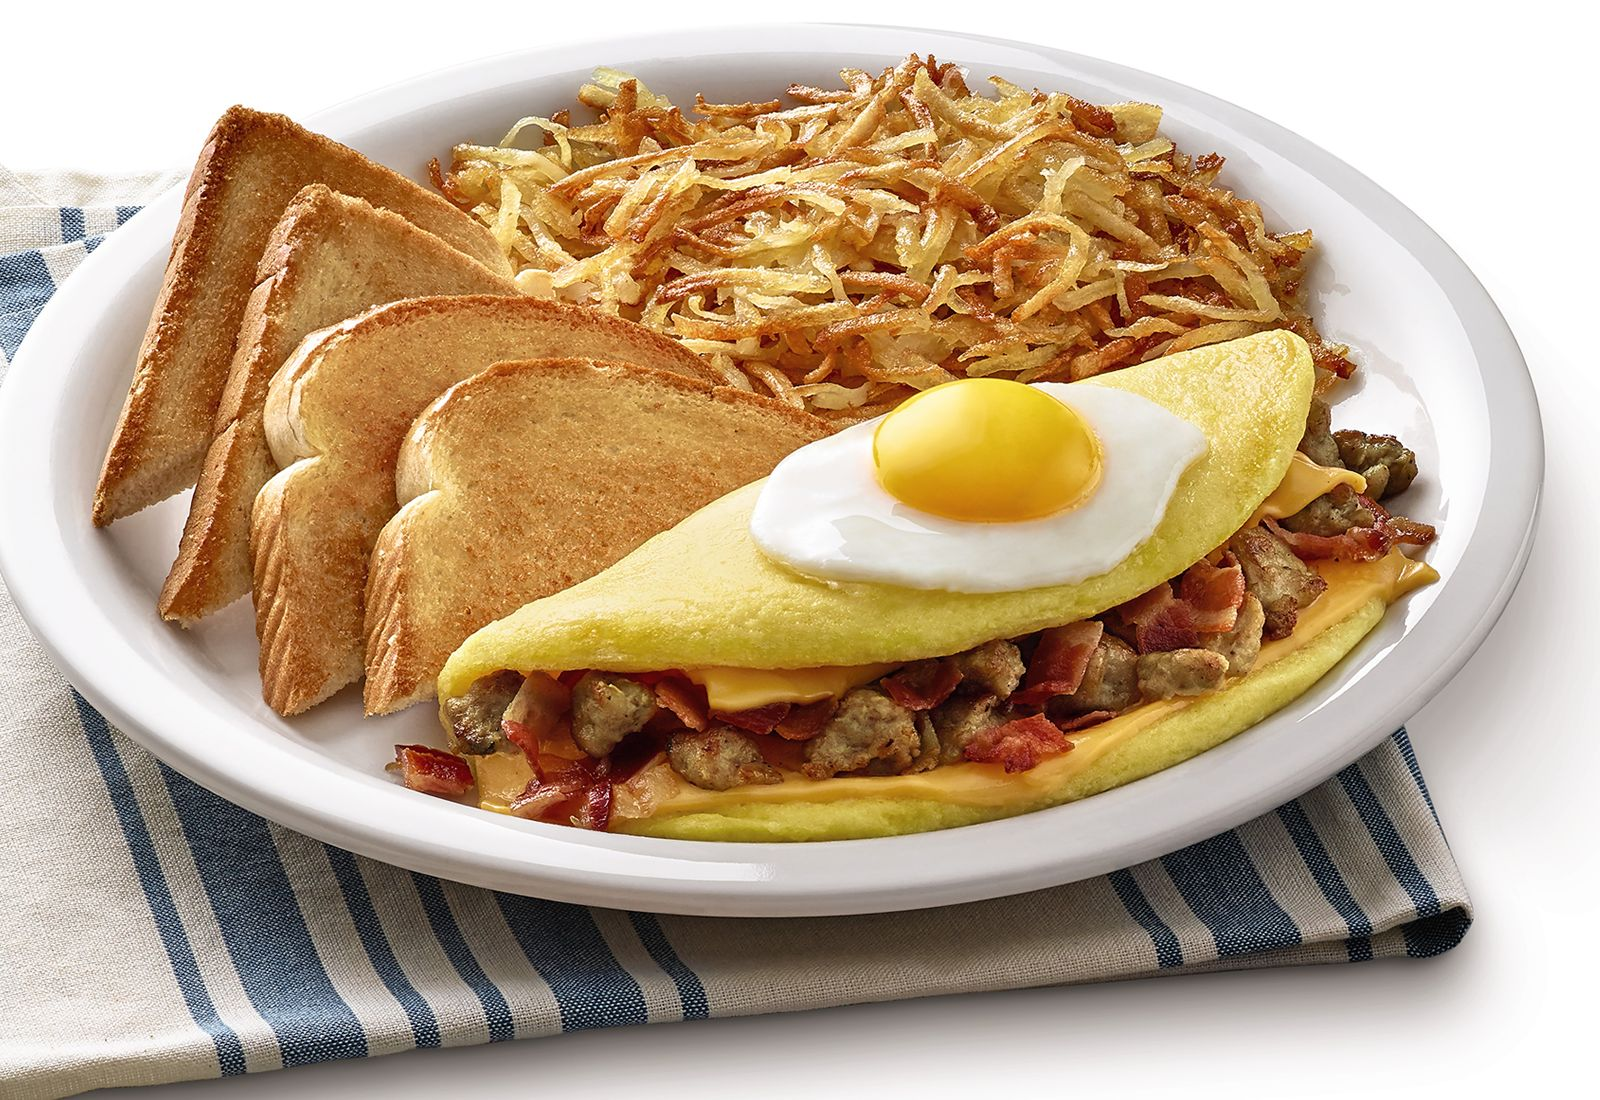 Denny's Brings Even More Value And Flavor To Breakfast Favorites